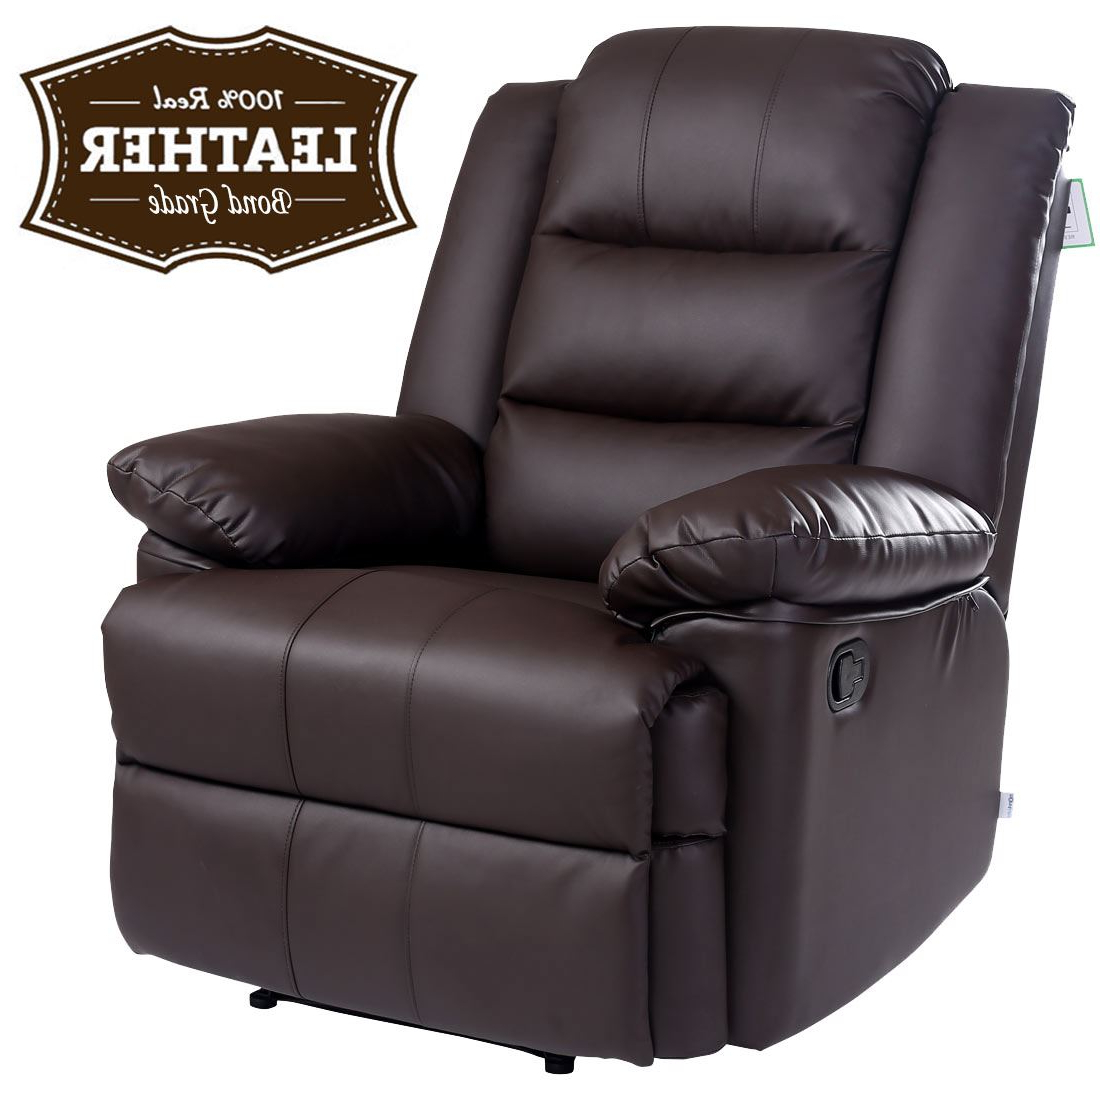 Sofa Chairs Pertaining To Widely Used Loxley Brown Leather Recliner Armchair Sofa Home Lounge Chair (View 1 of 20)